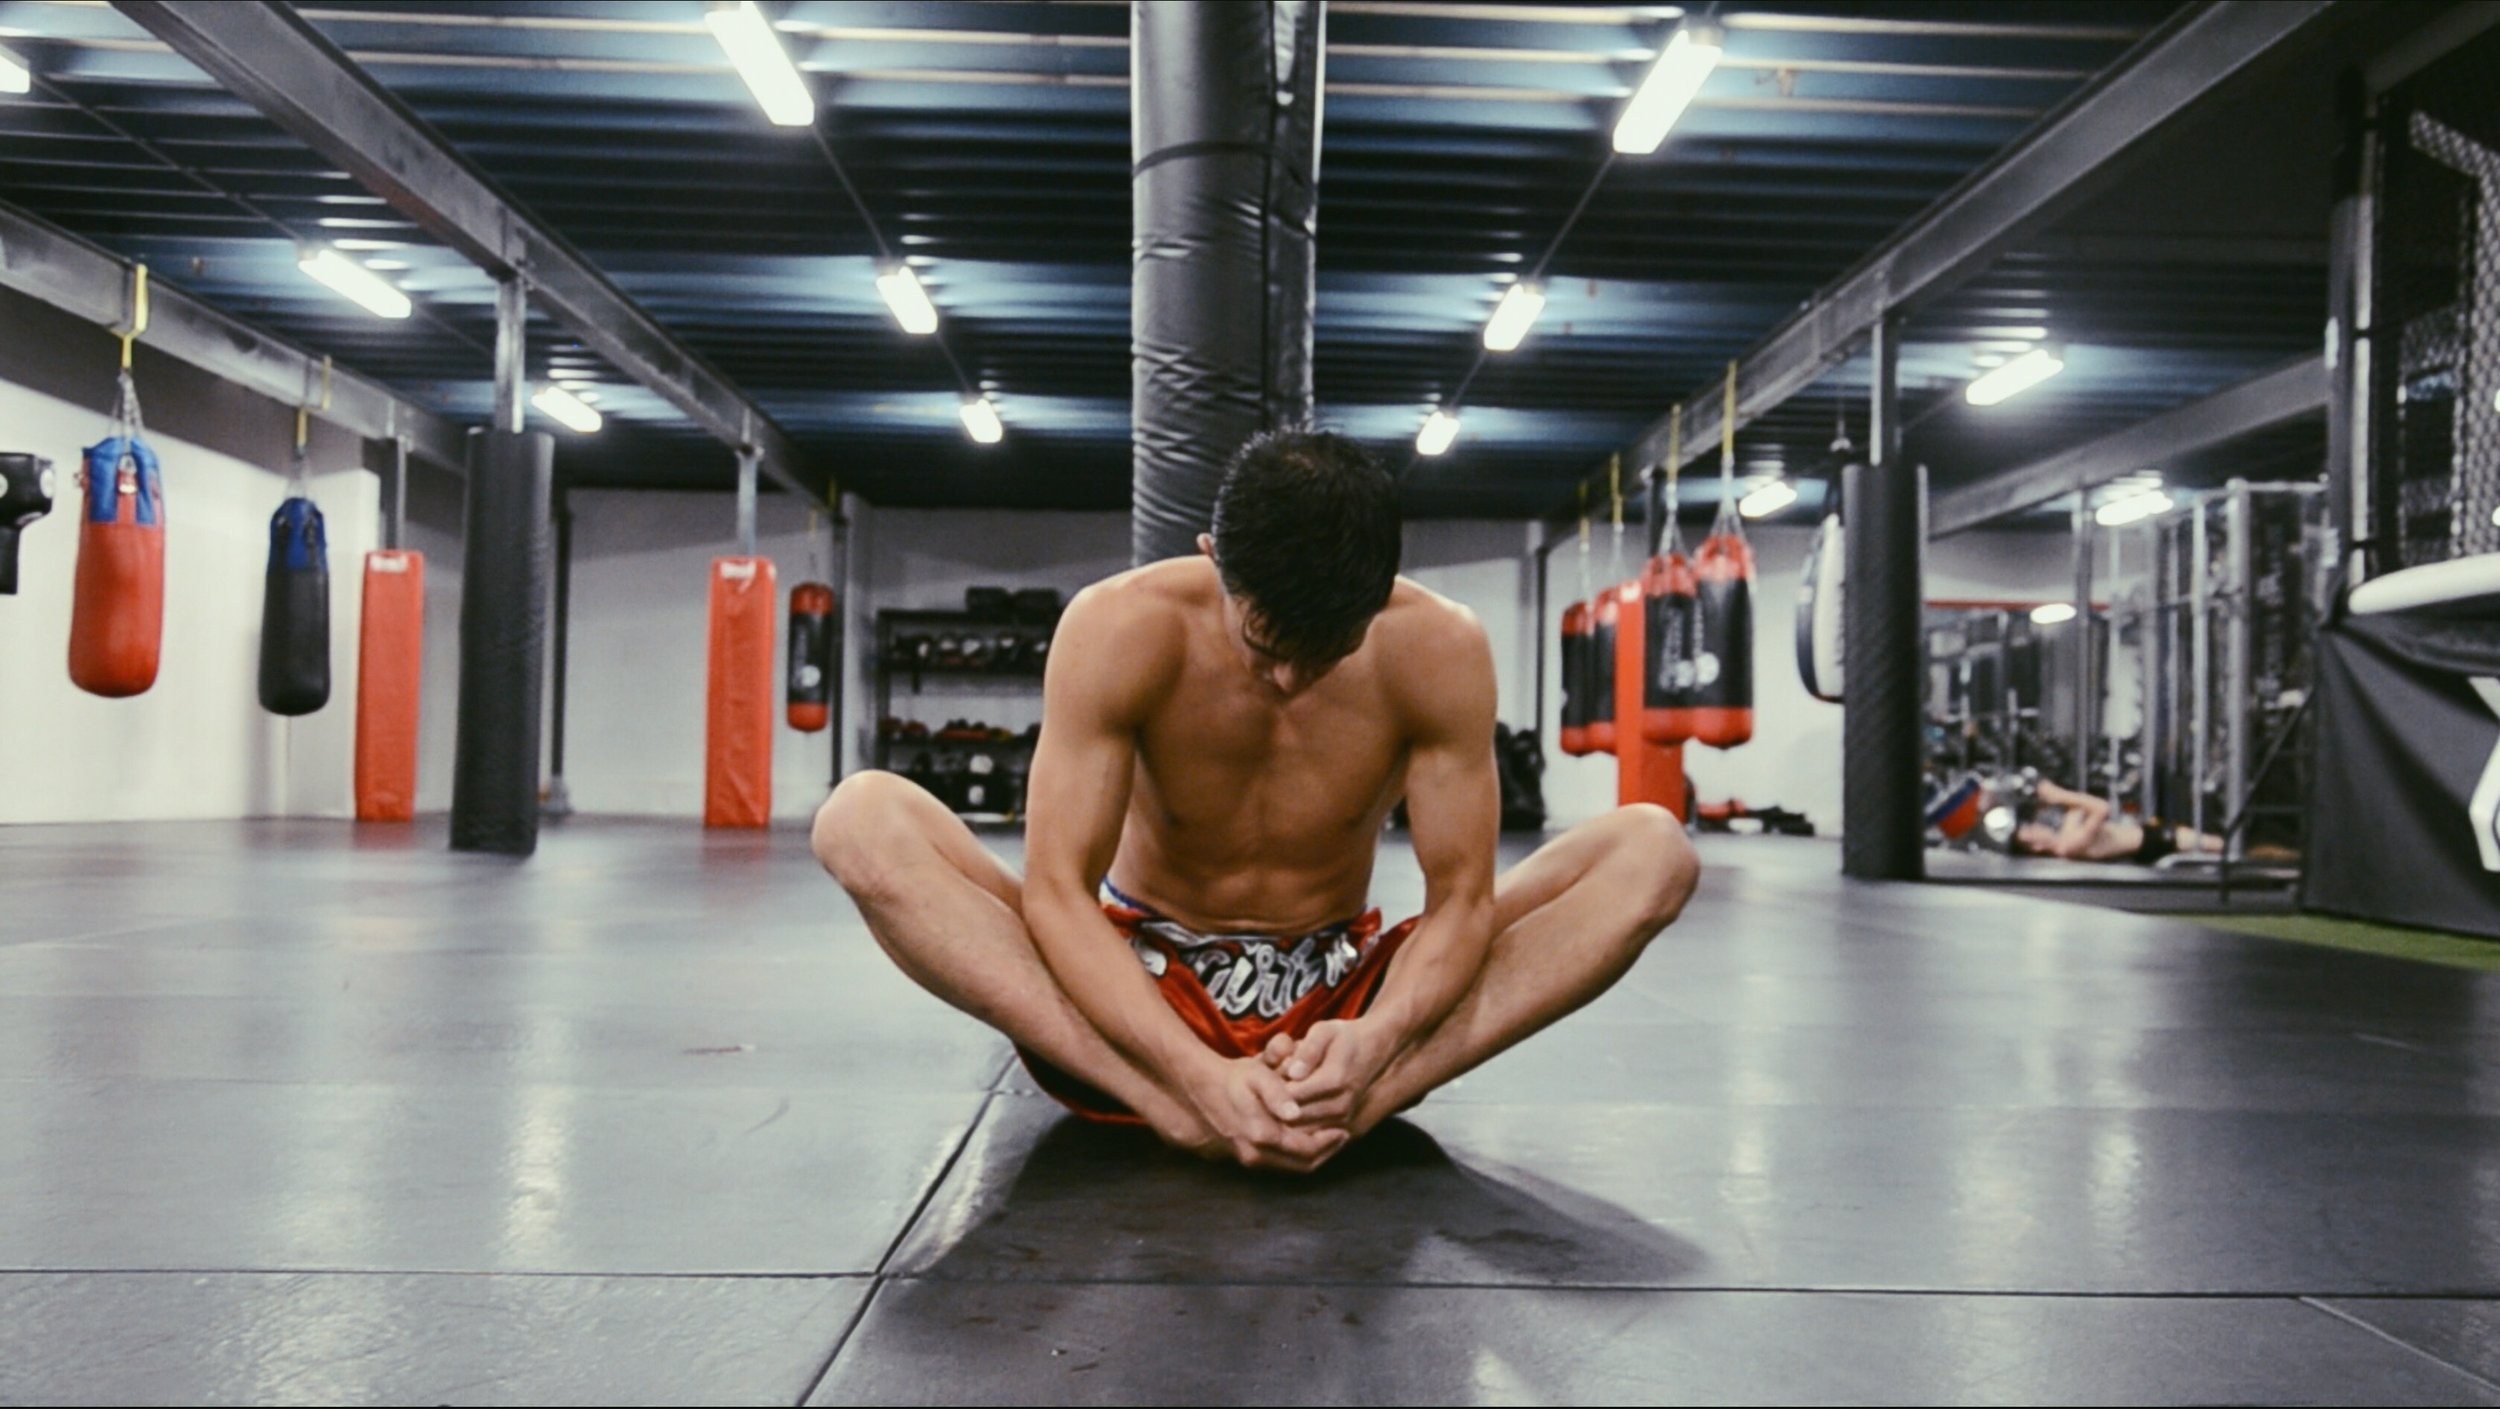 A quiet moment of reflection during his post-workout stretch